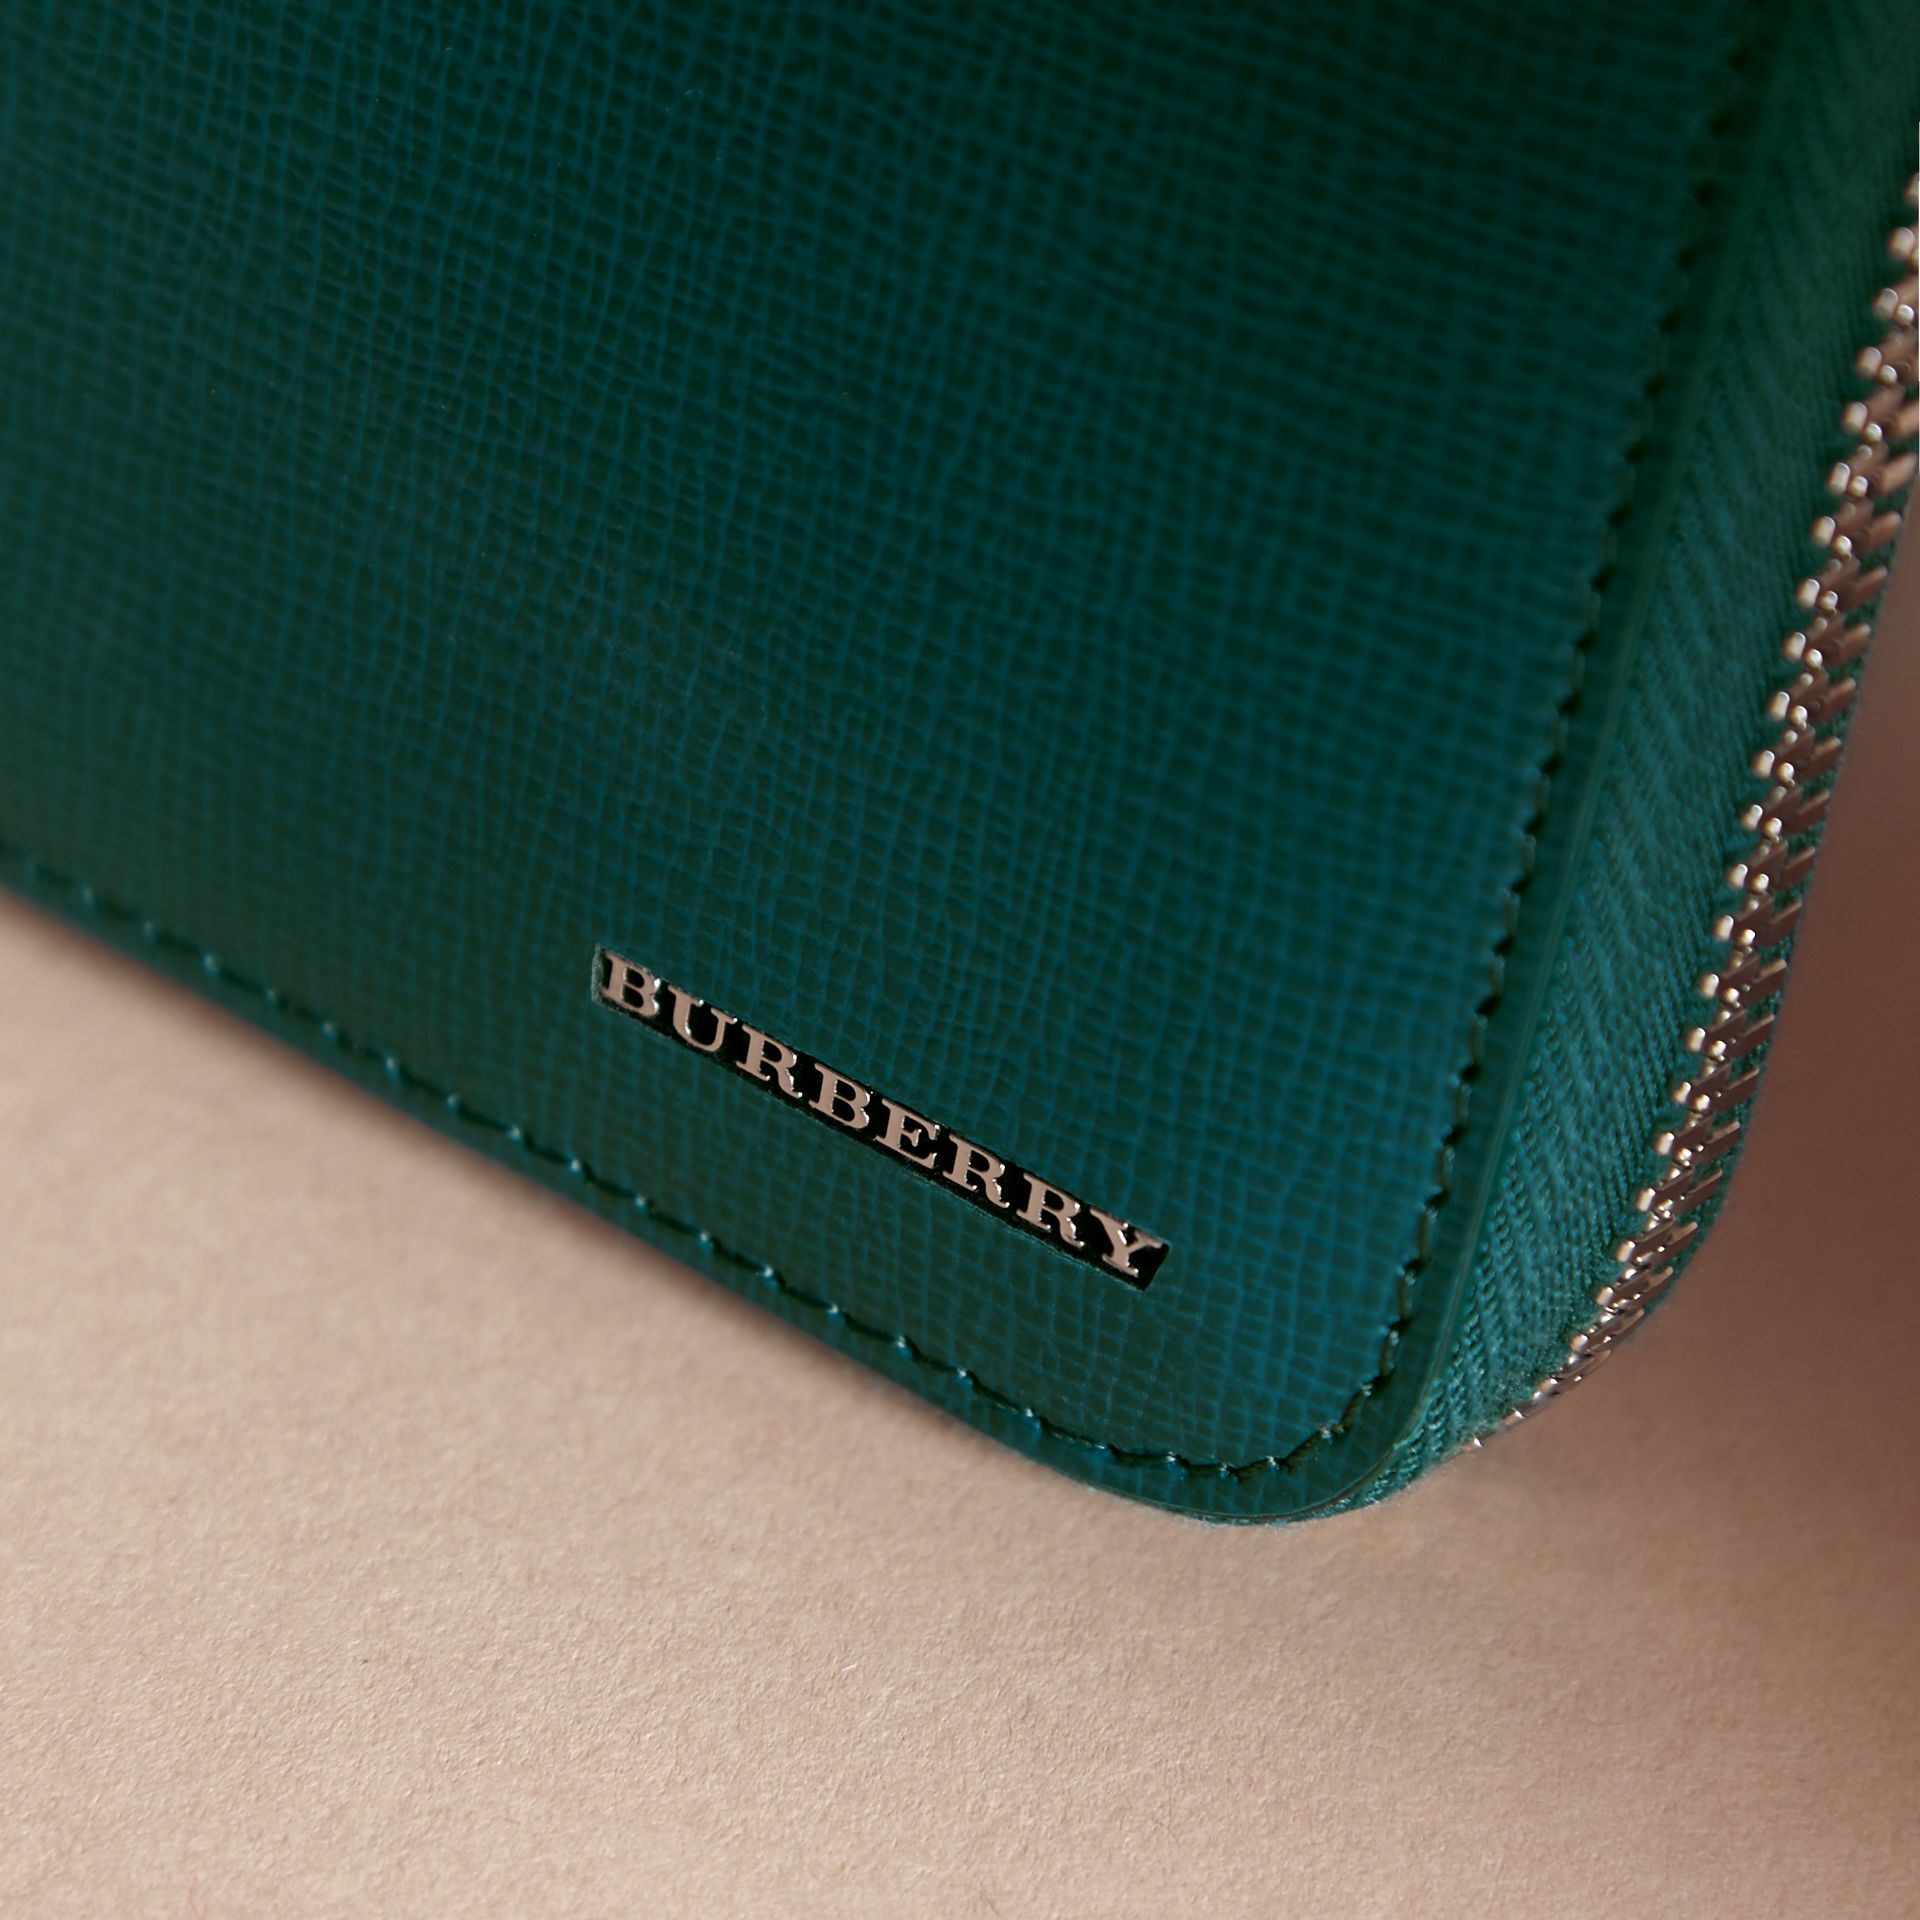 London Leather Ziparound Wallet in Dark Teal - Men | Burberry - gallery image 2